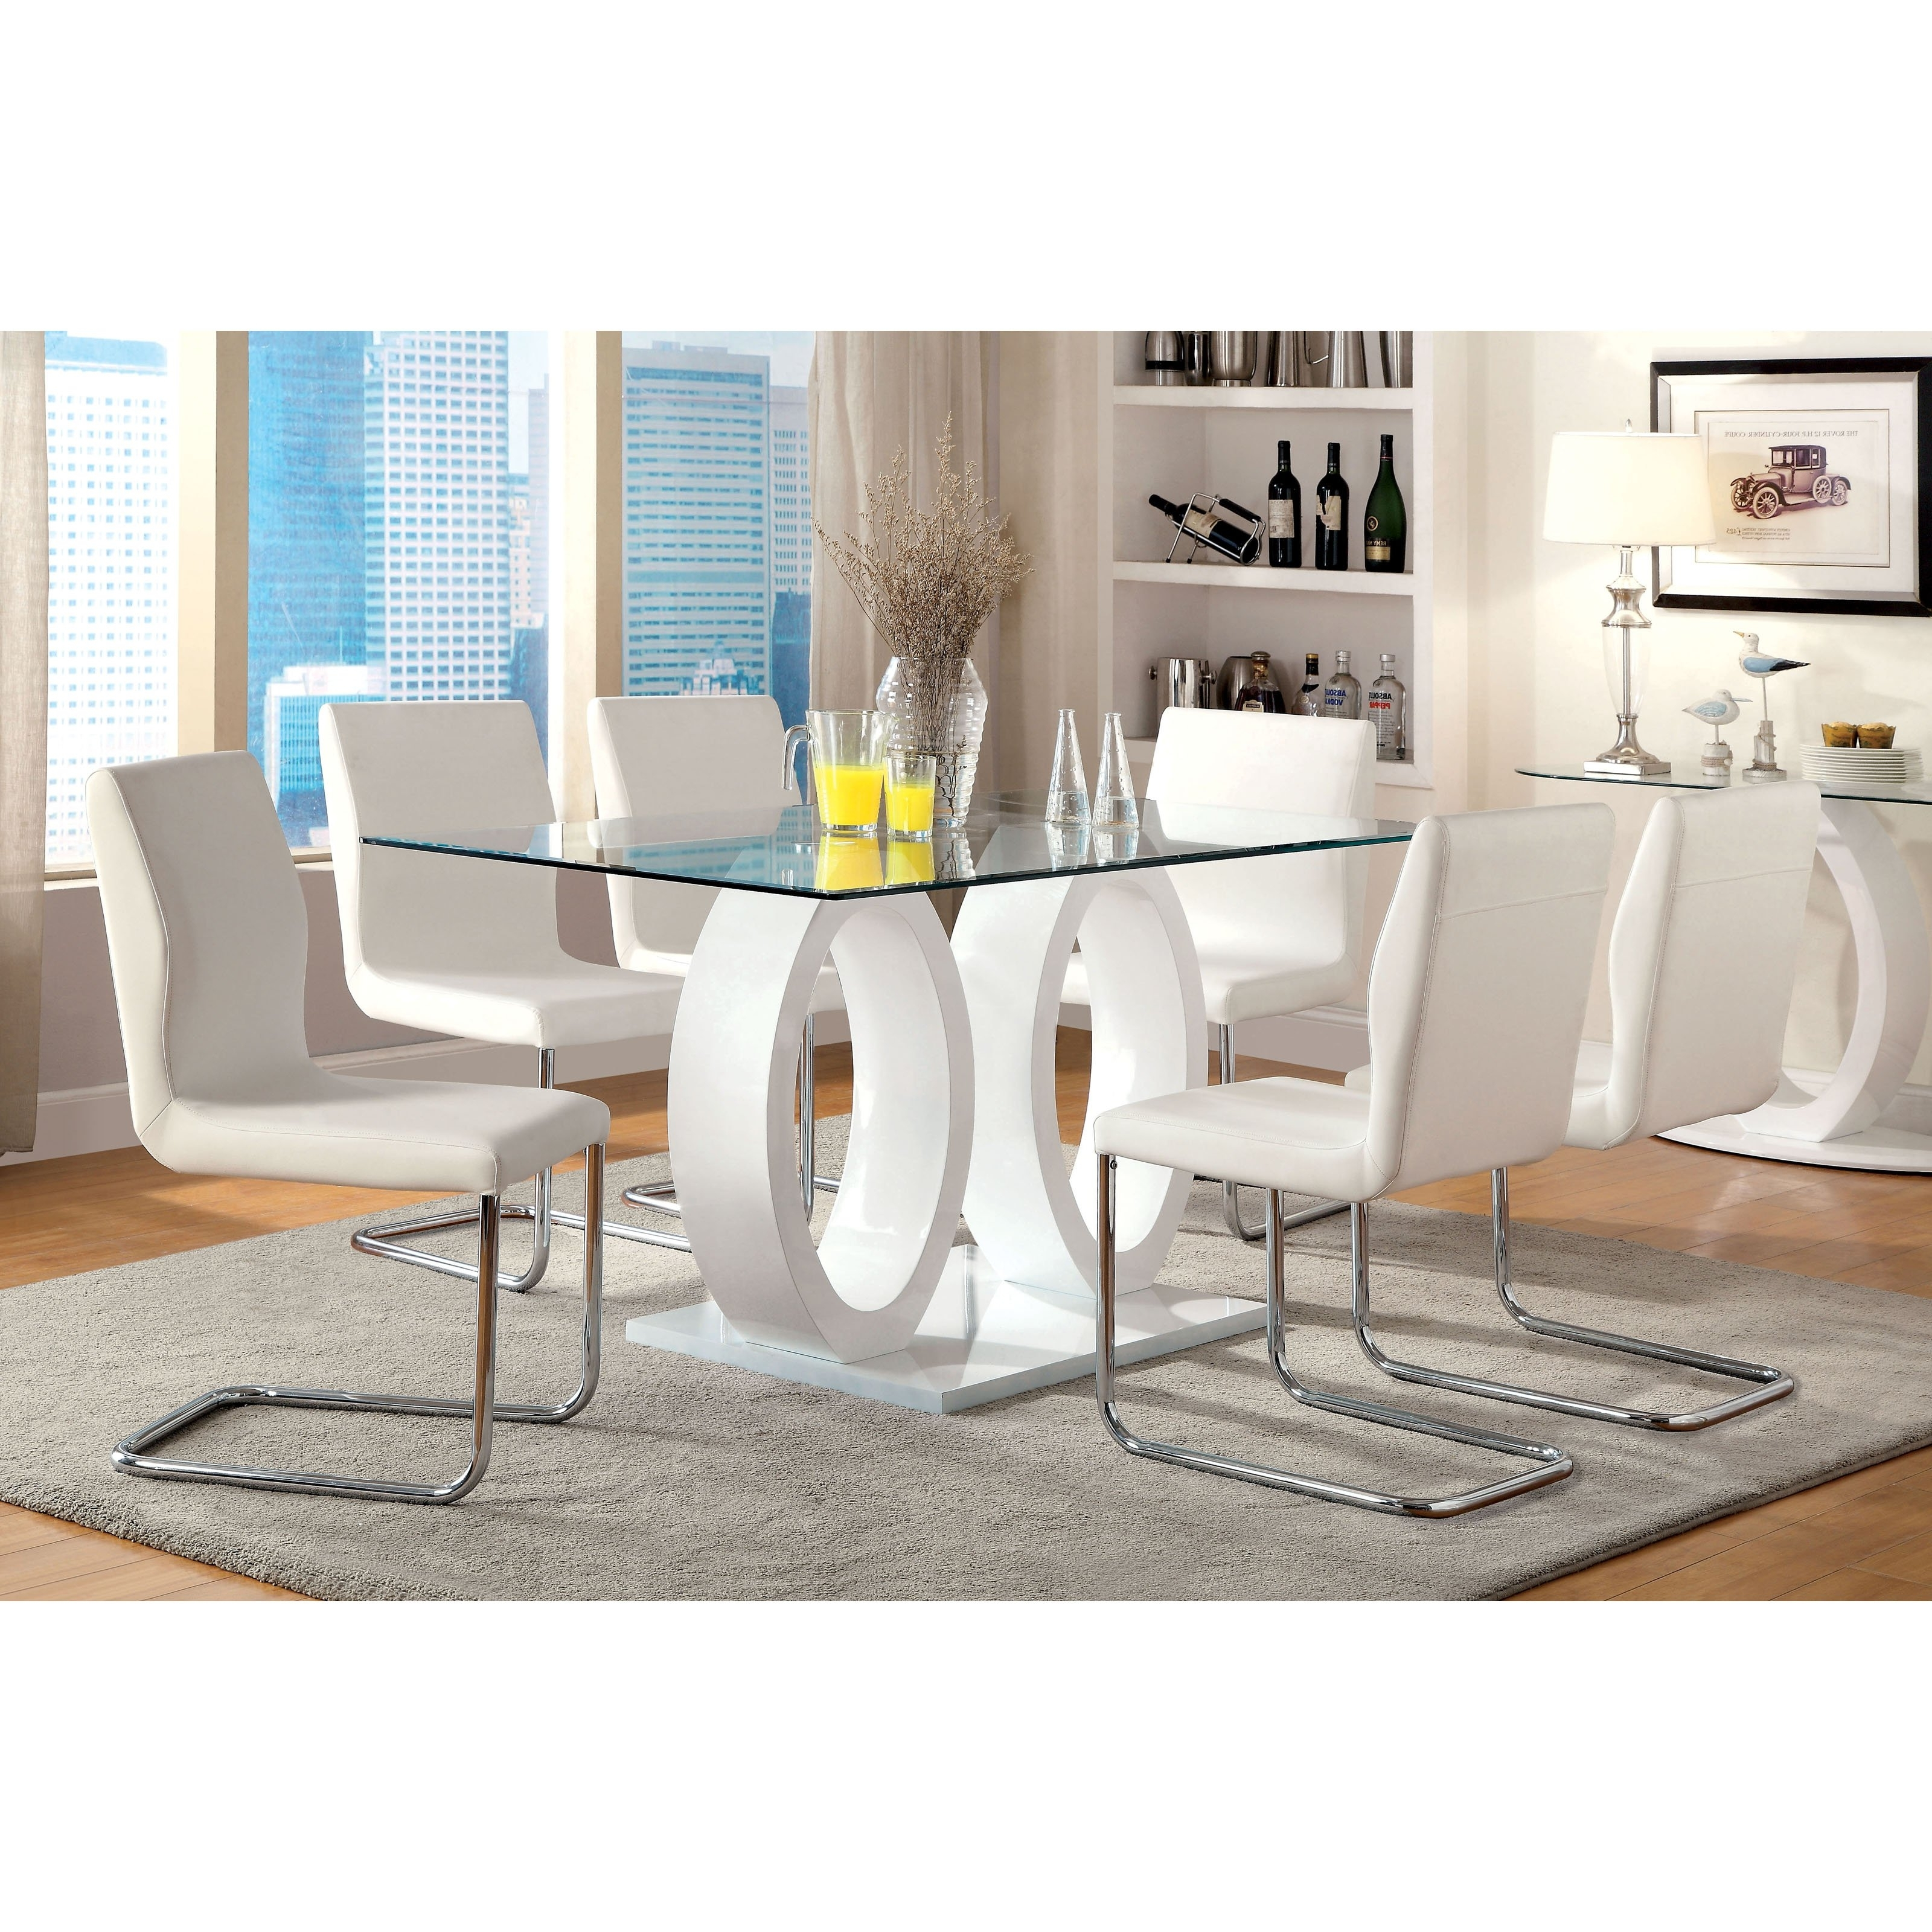 Furniture Of America Damore Contemporary 7 Piece High Gloss Dining Pertaining To Popular Contemporary Dining Tables Sets (View 10 of 25)